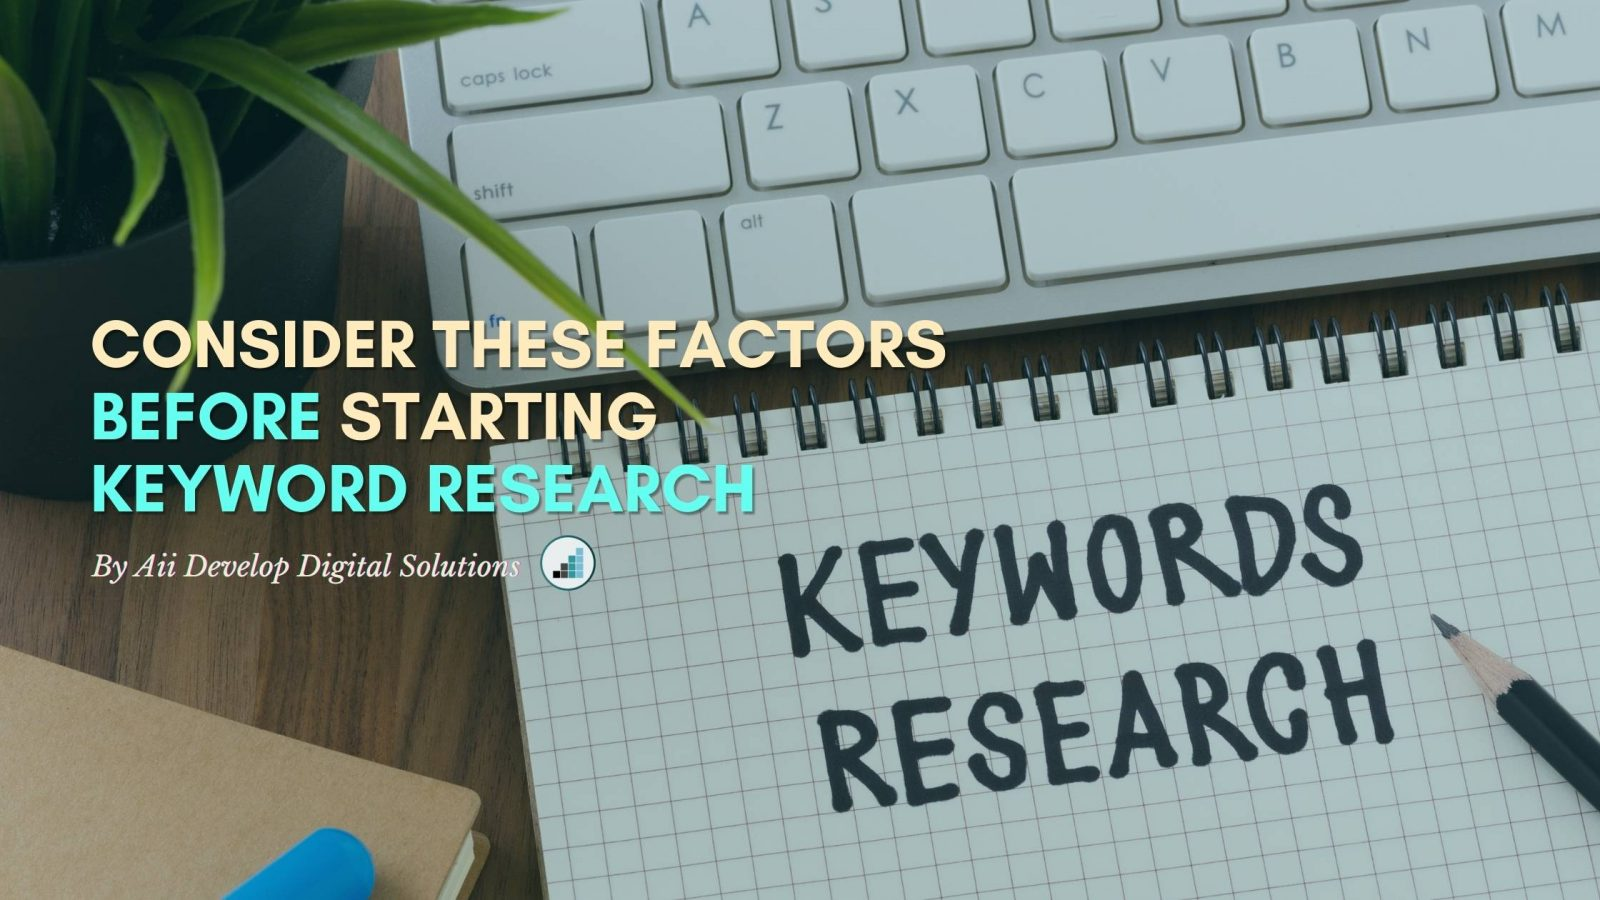 Consider These Factors Before Starting Keyword Research